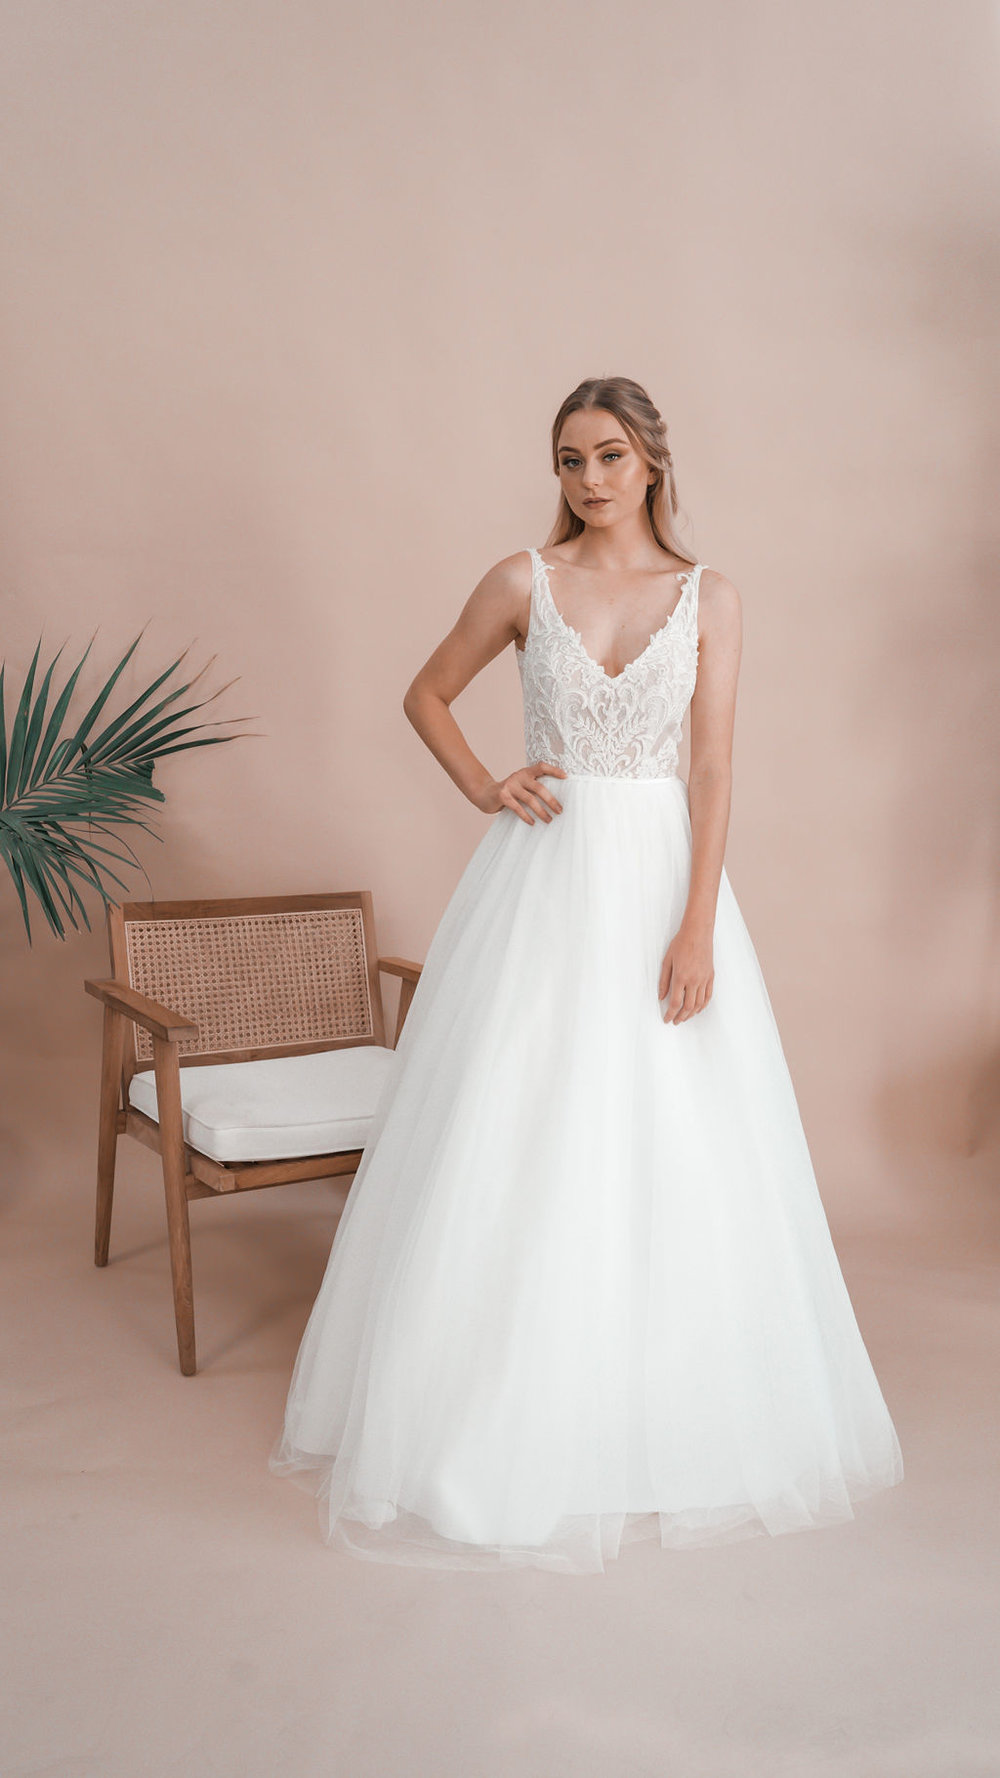 Sadie Debutante Dress